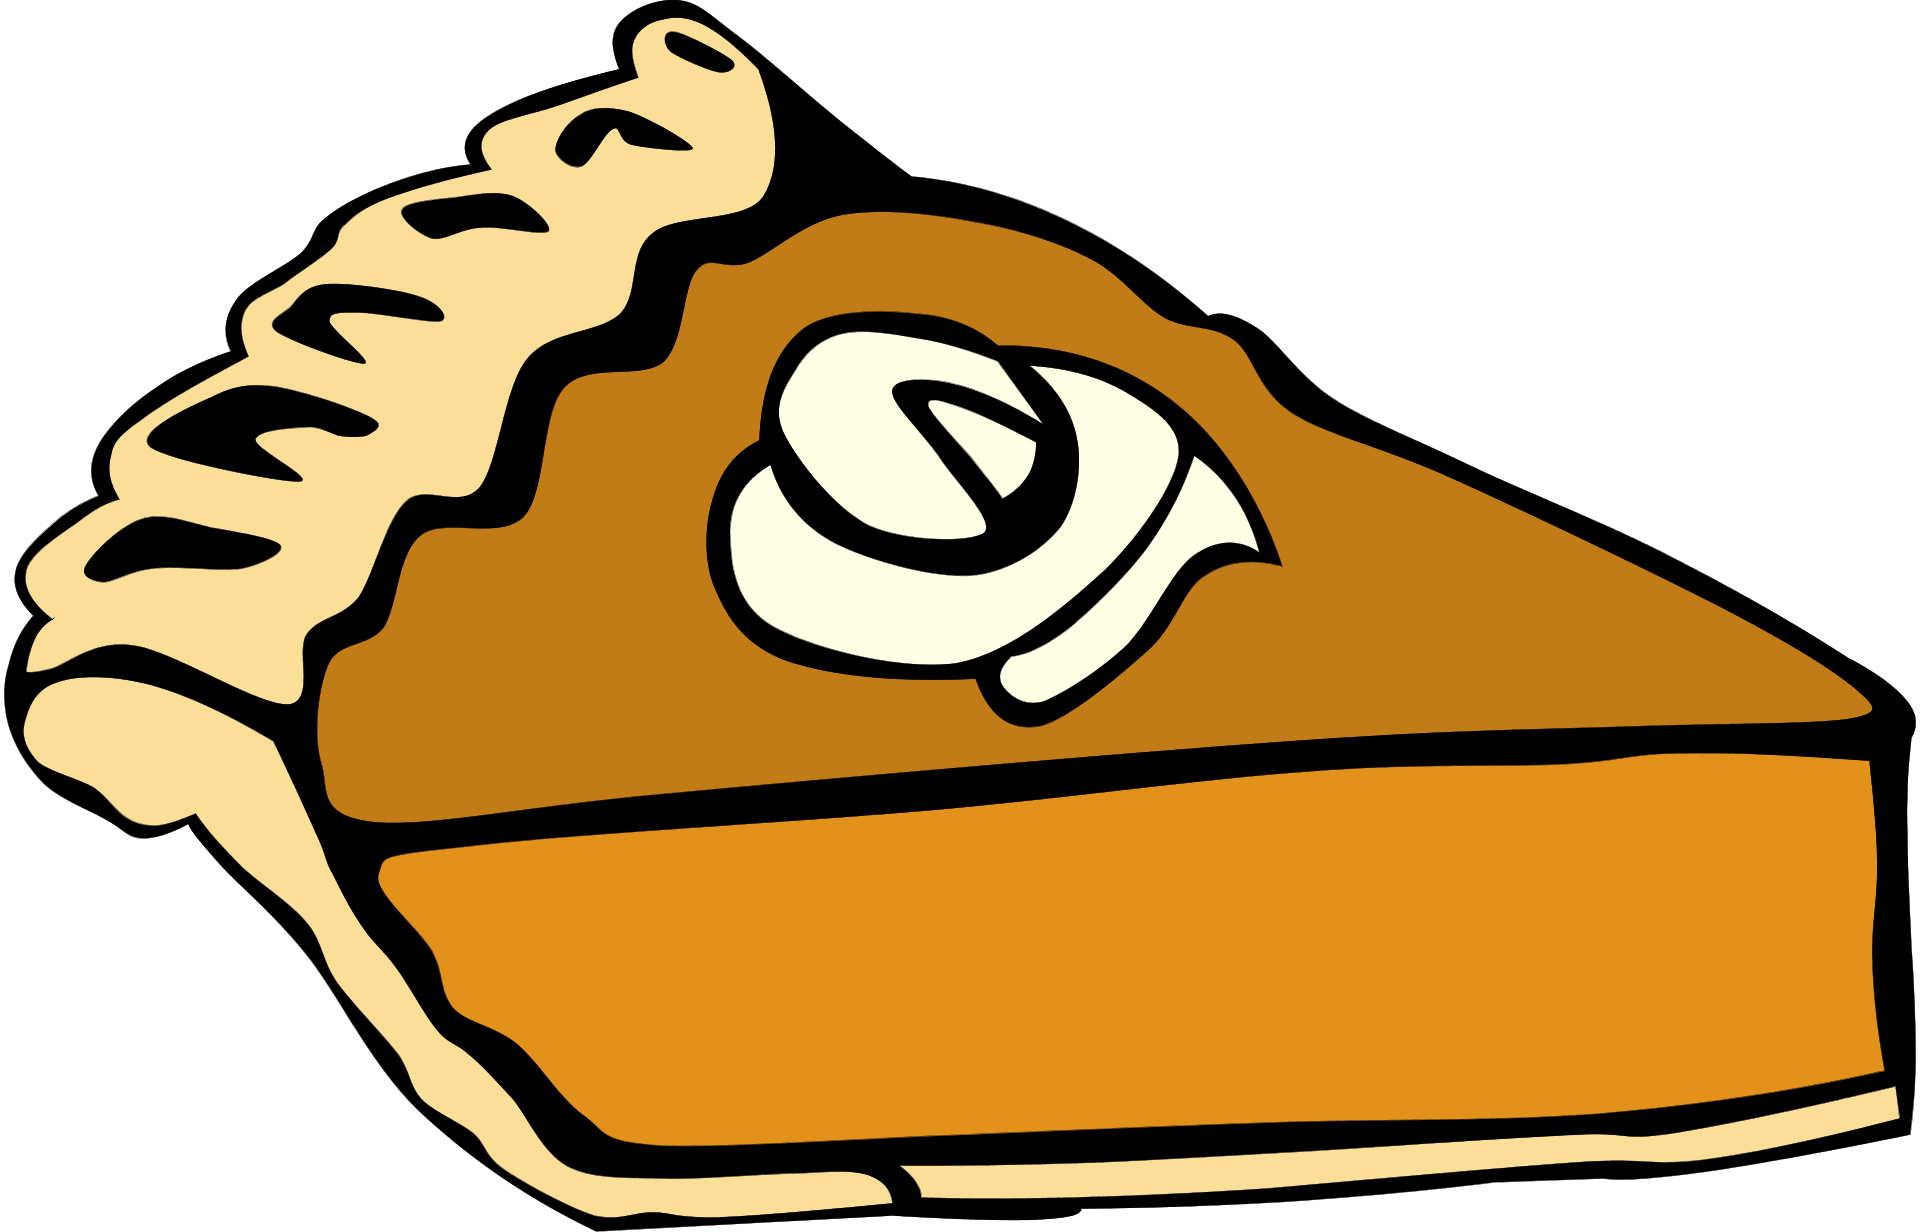 Row of apple pie clipart picture download Pie Clipart | Clipart Panda - Free Clipart Images picture download